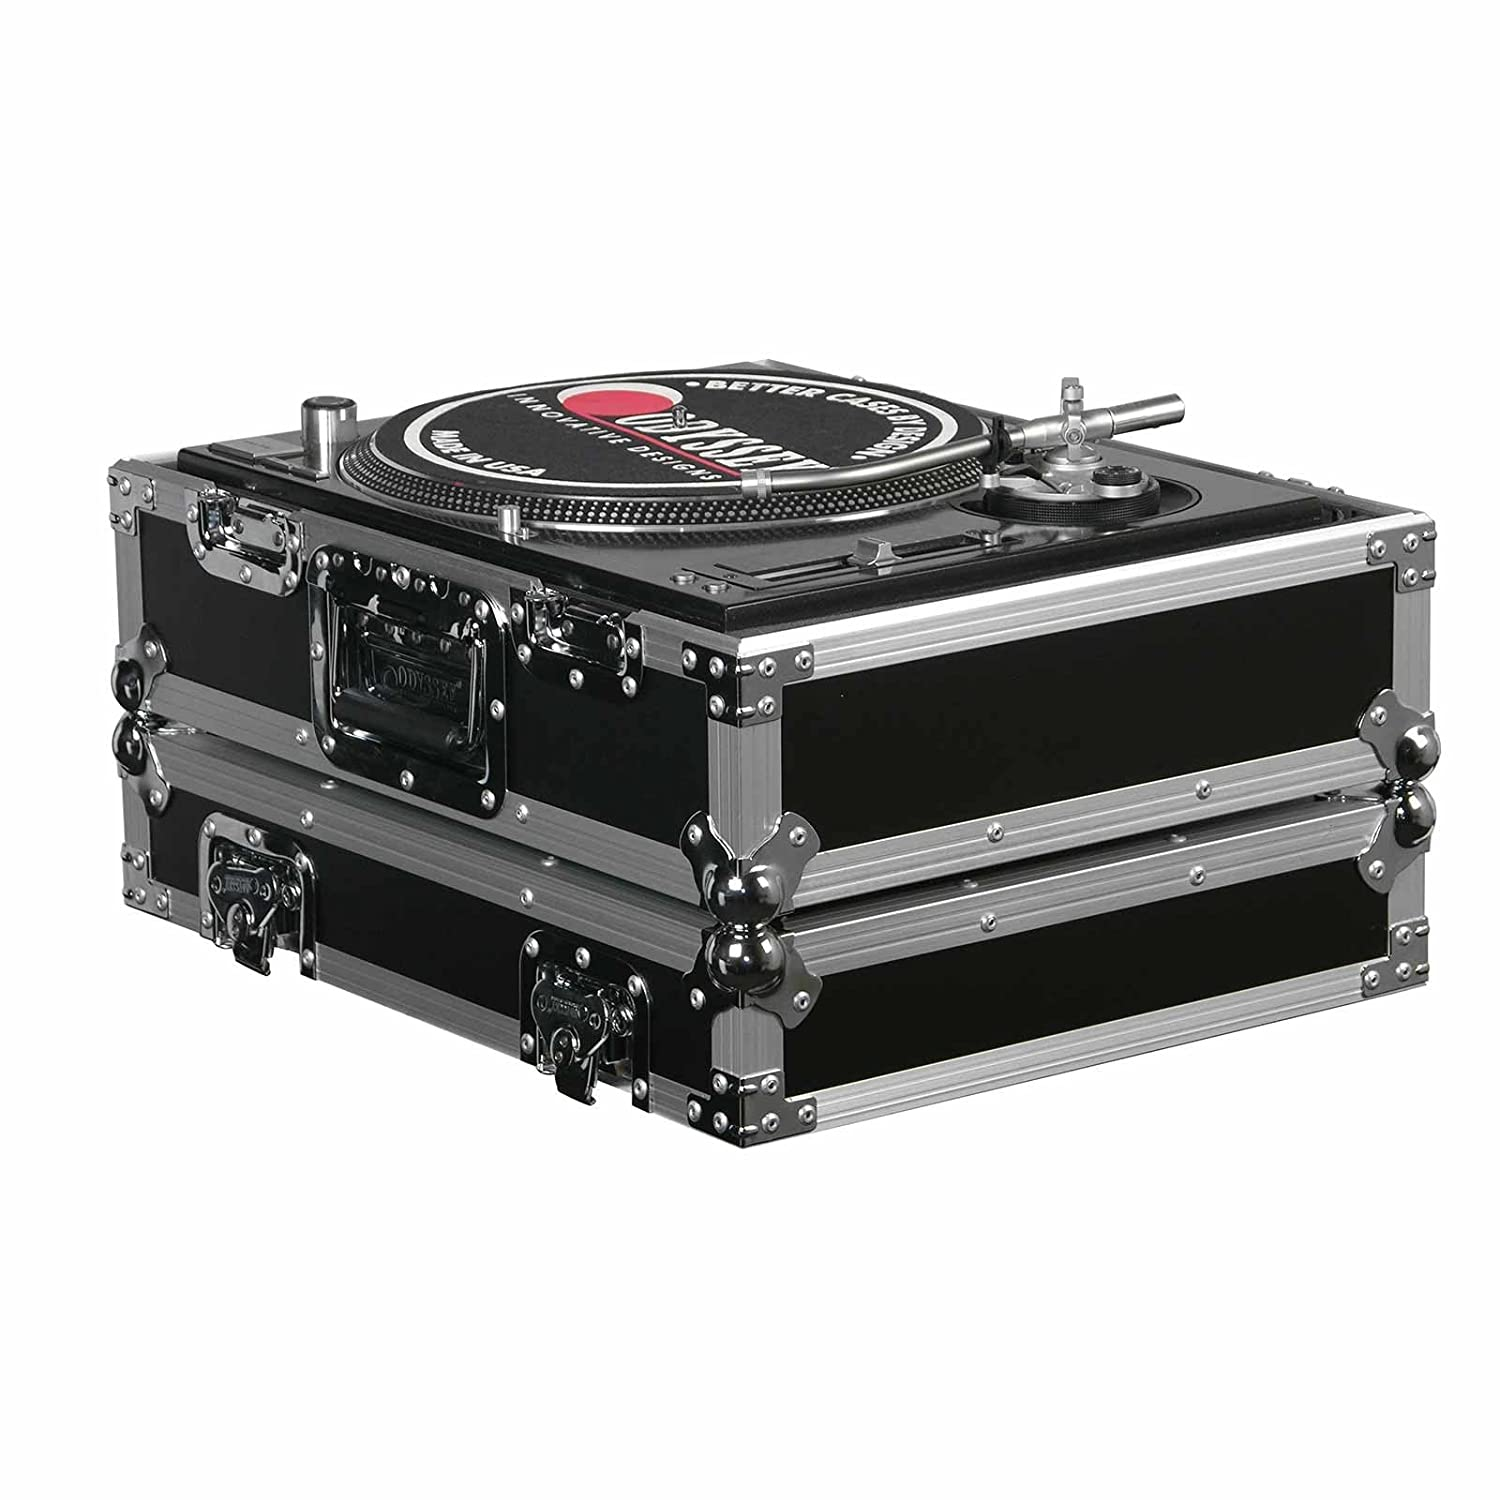 (2) Odyssey FR1200E ATA Flight Ready Pro DJ Equipment Turntable Transport Cases 2 x FR1200E